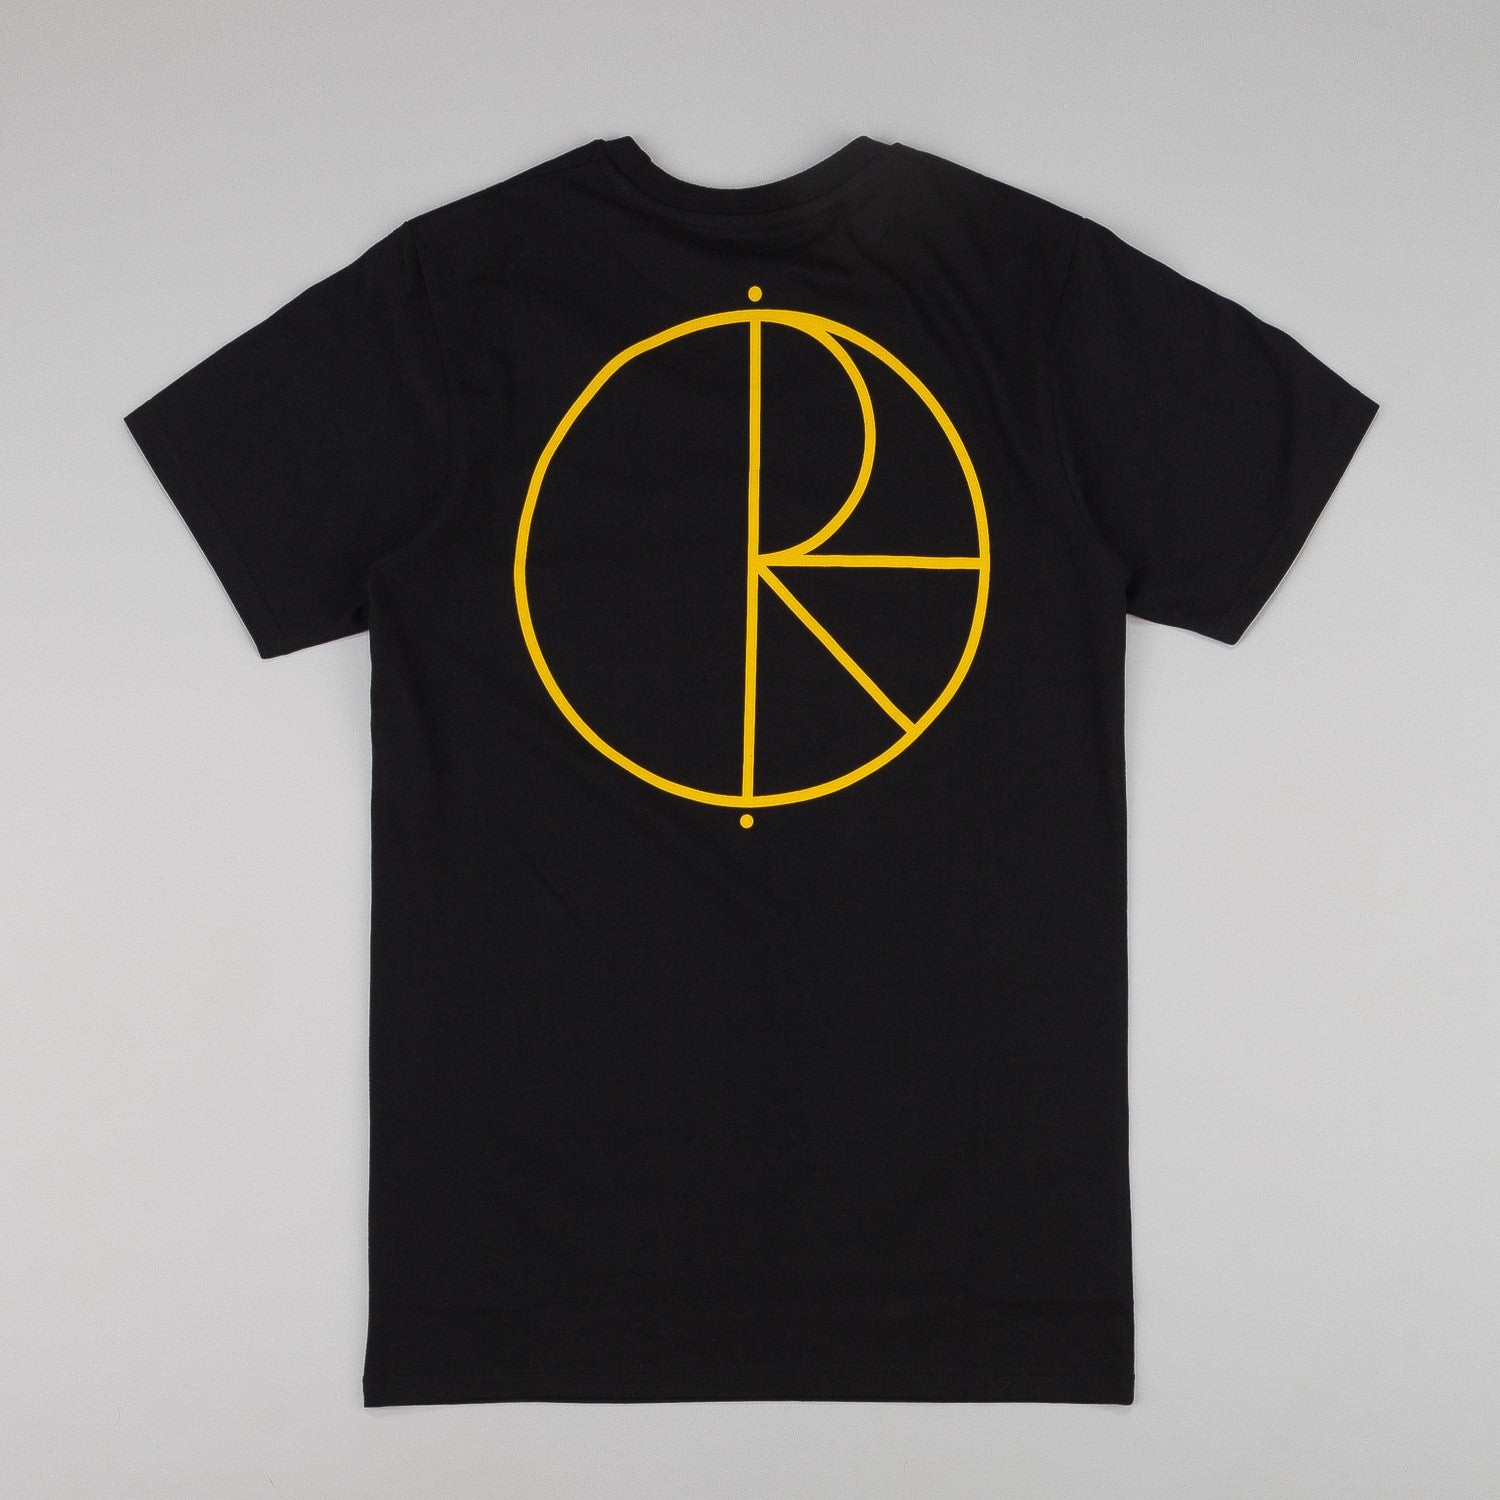 Polar Stroke Logo T-Shirt - Black / Yellow